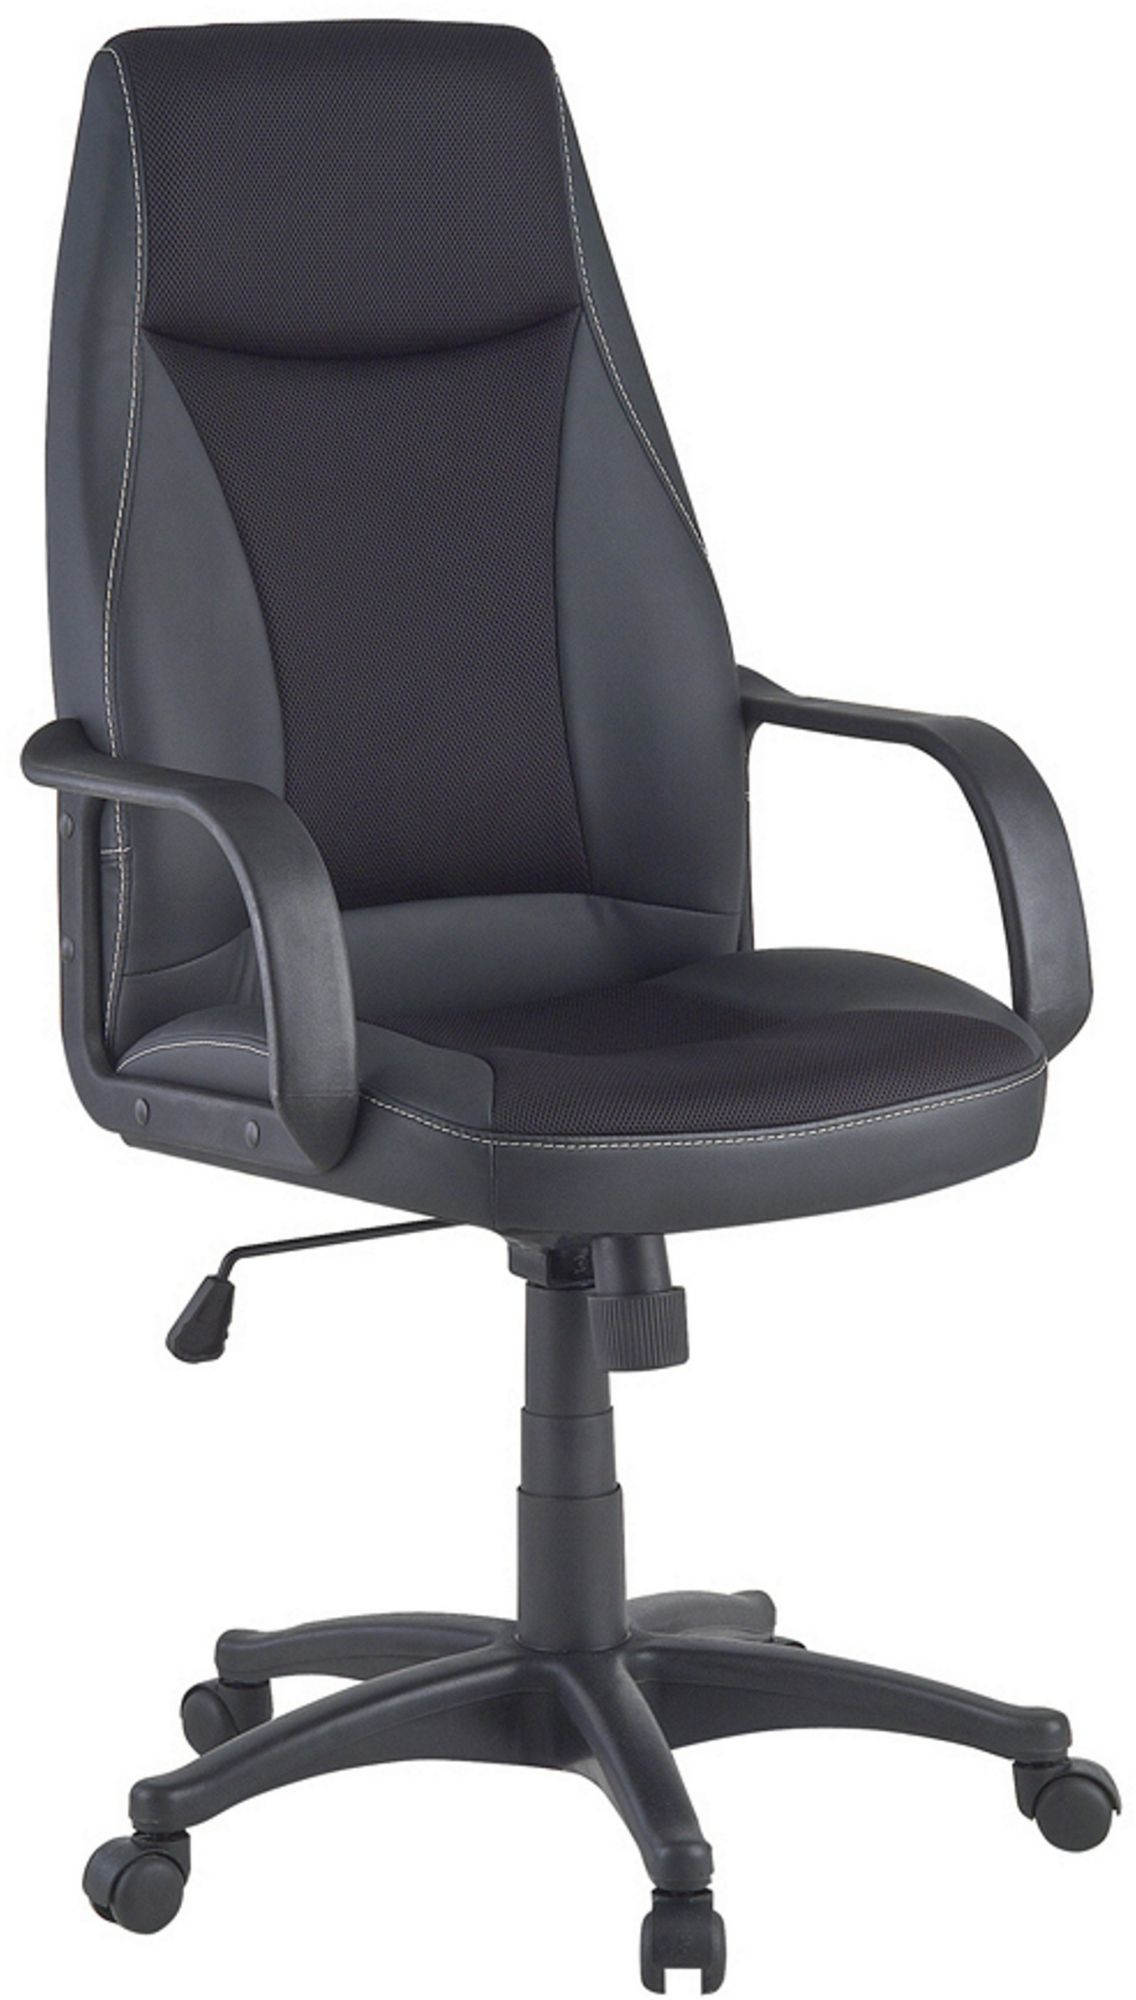 DUOCOLLECTION DUO Collection Chefsessel »Fellbach«